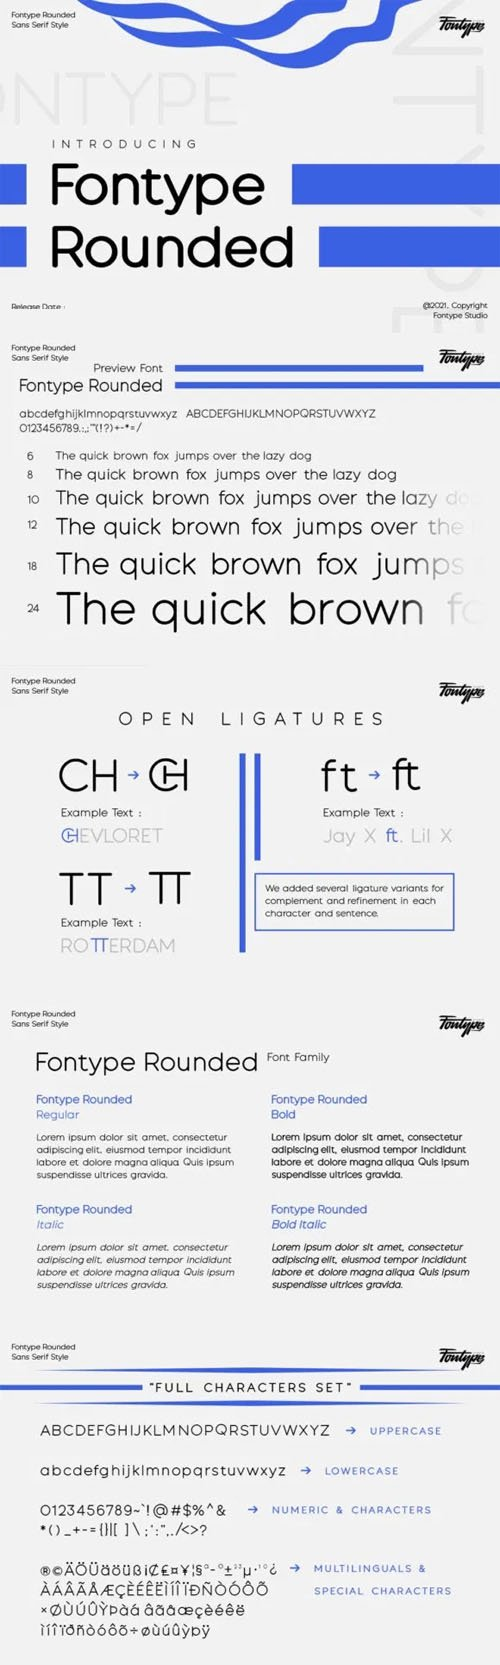 Fontype Rounded Sans Serif Font Family [4-Weights]